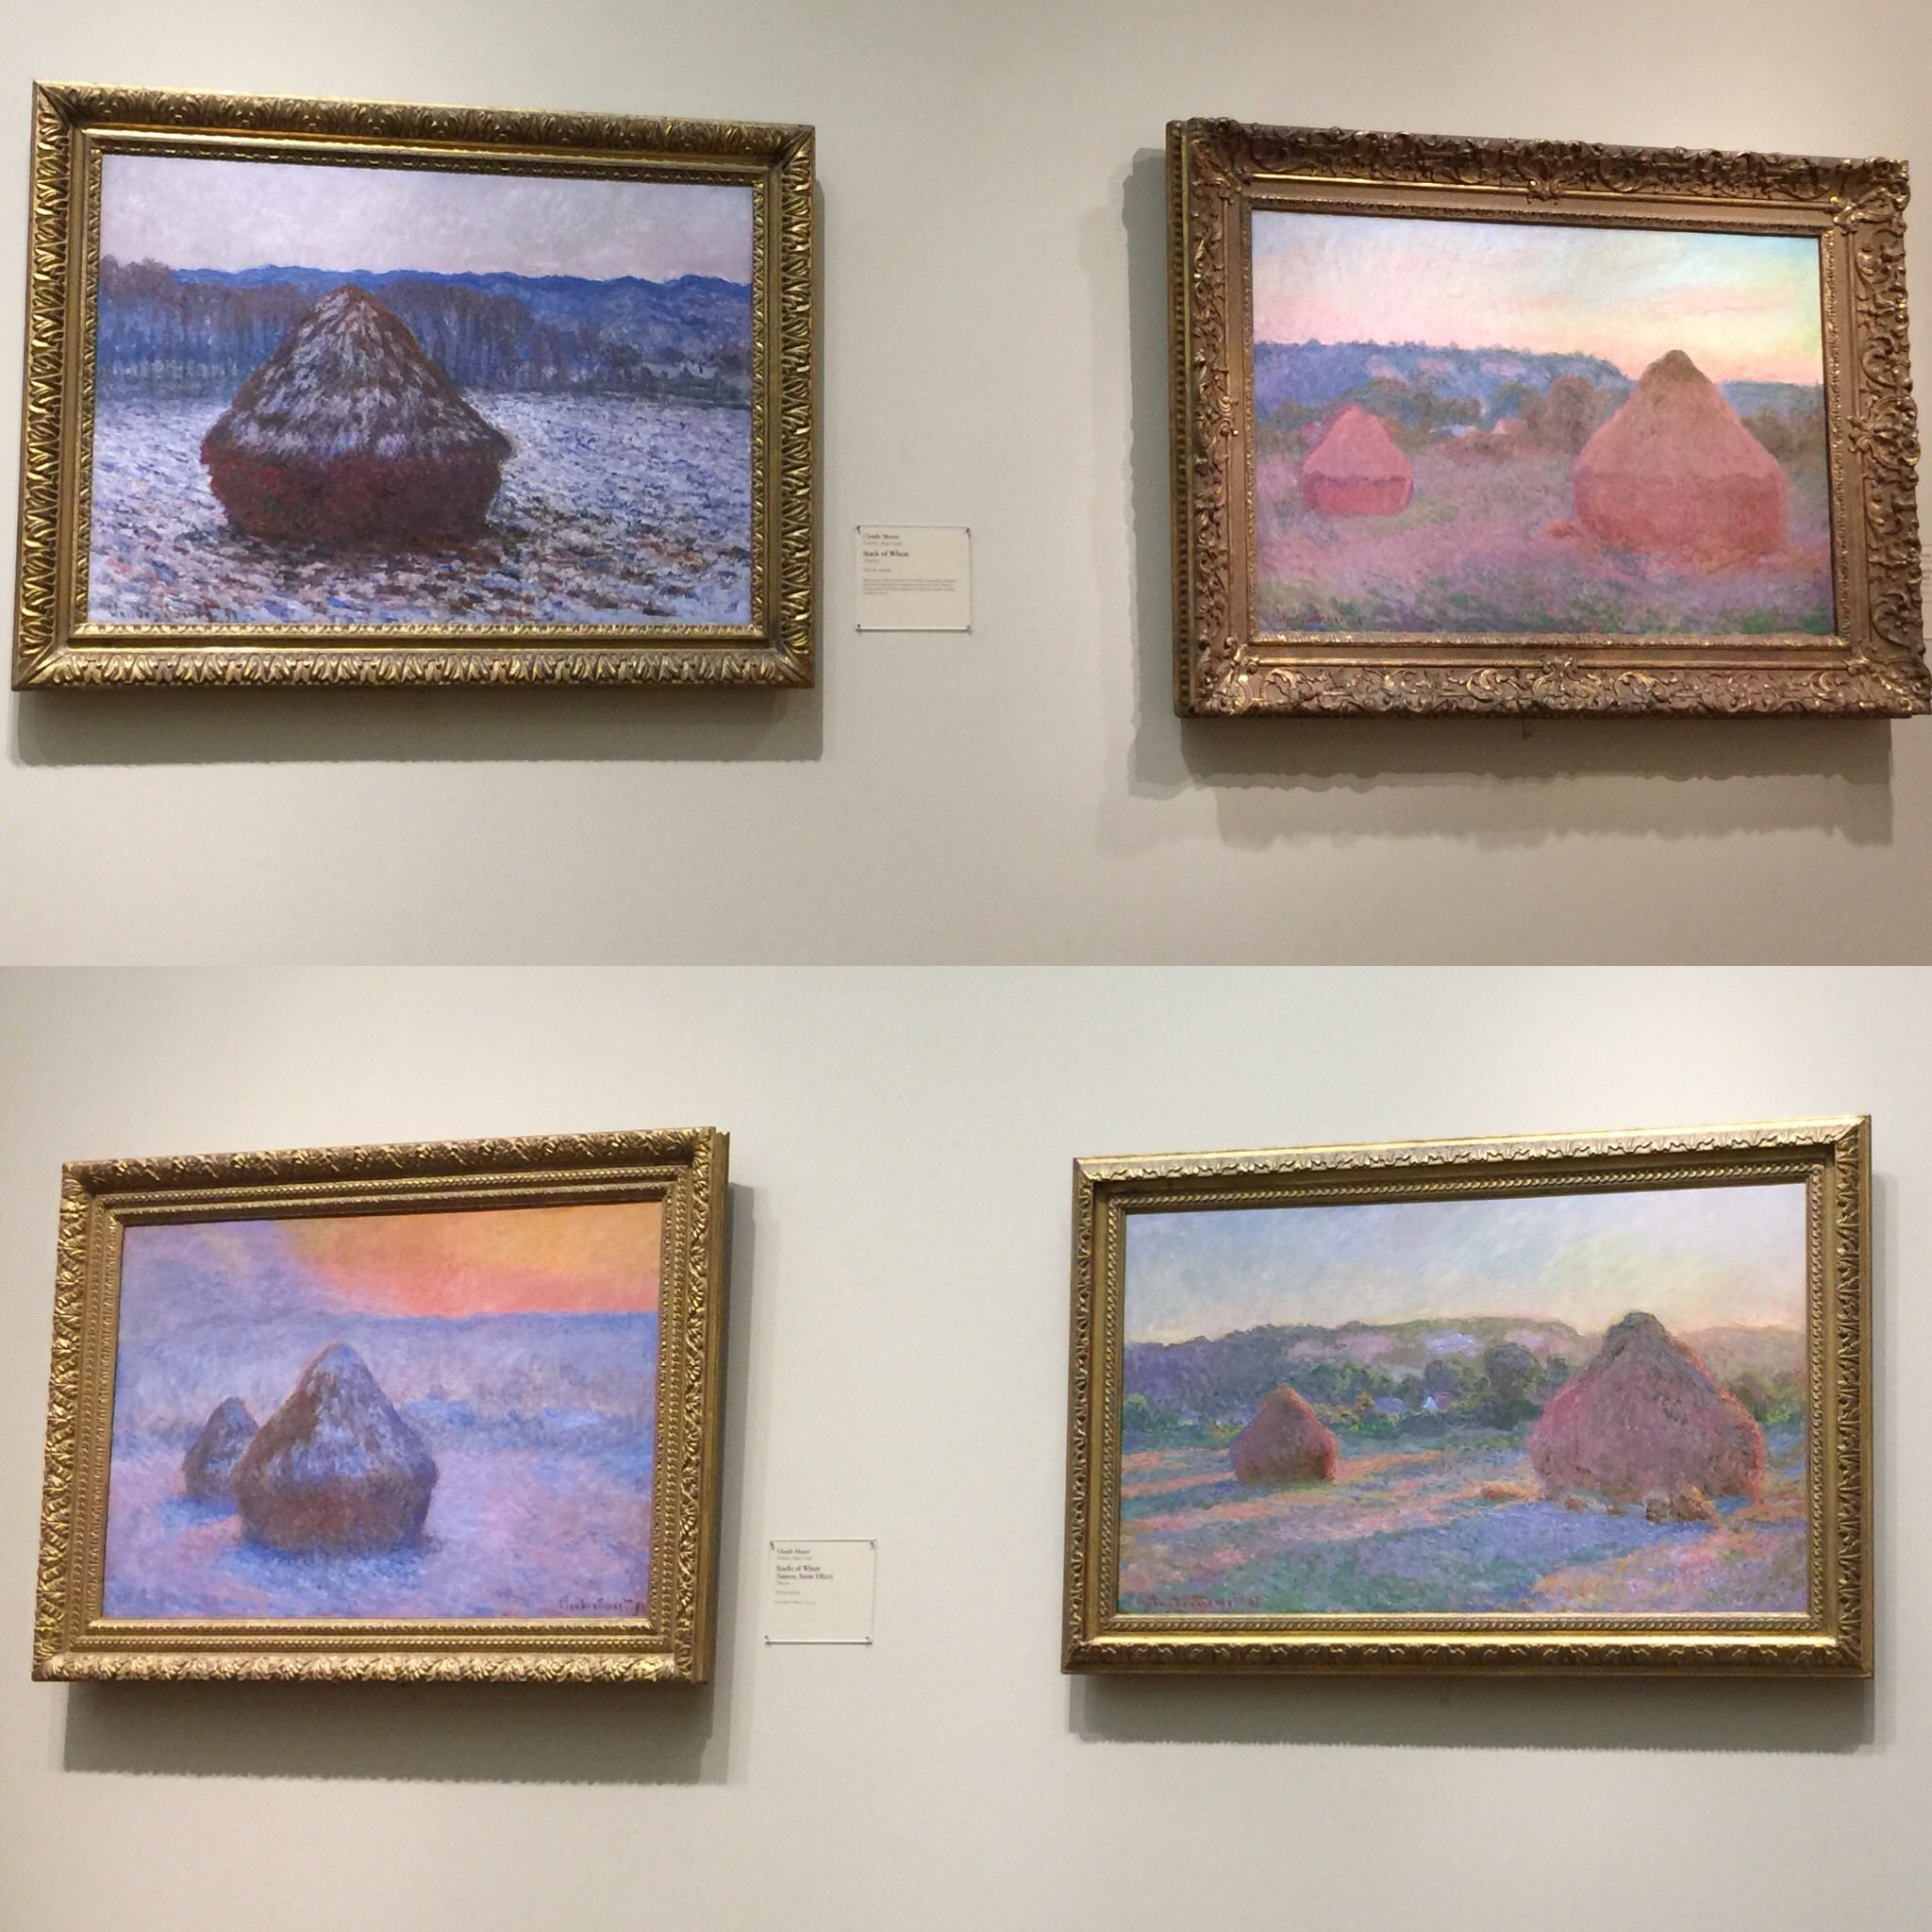 Four of Monet's Haystacks at the Art Institute of Chicago from when I visited last Fall.